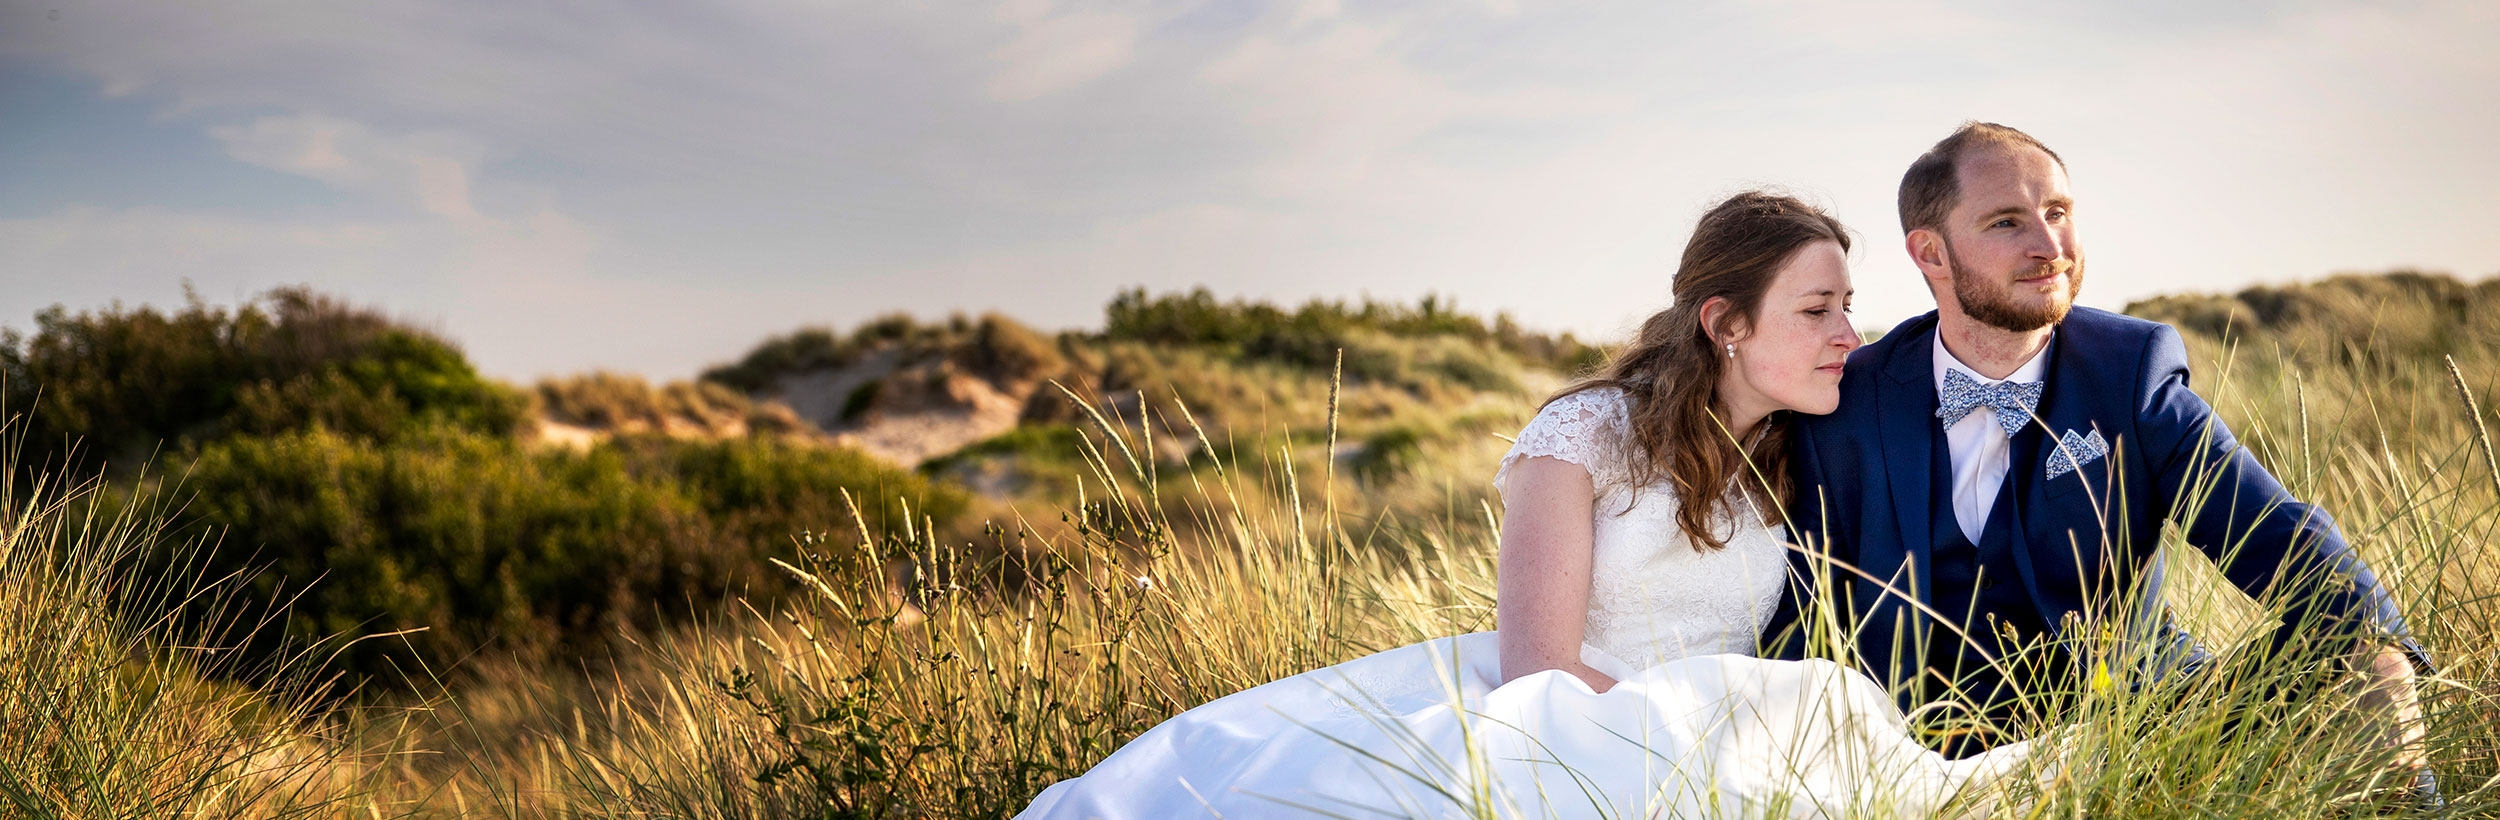 mariage-laurene-guillaume-couple-pagetop